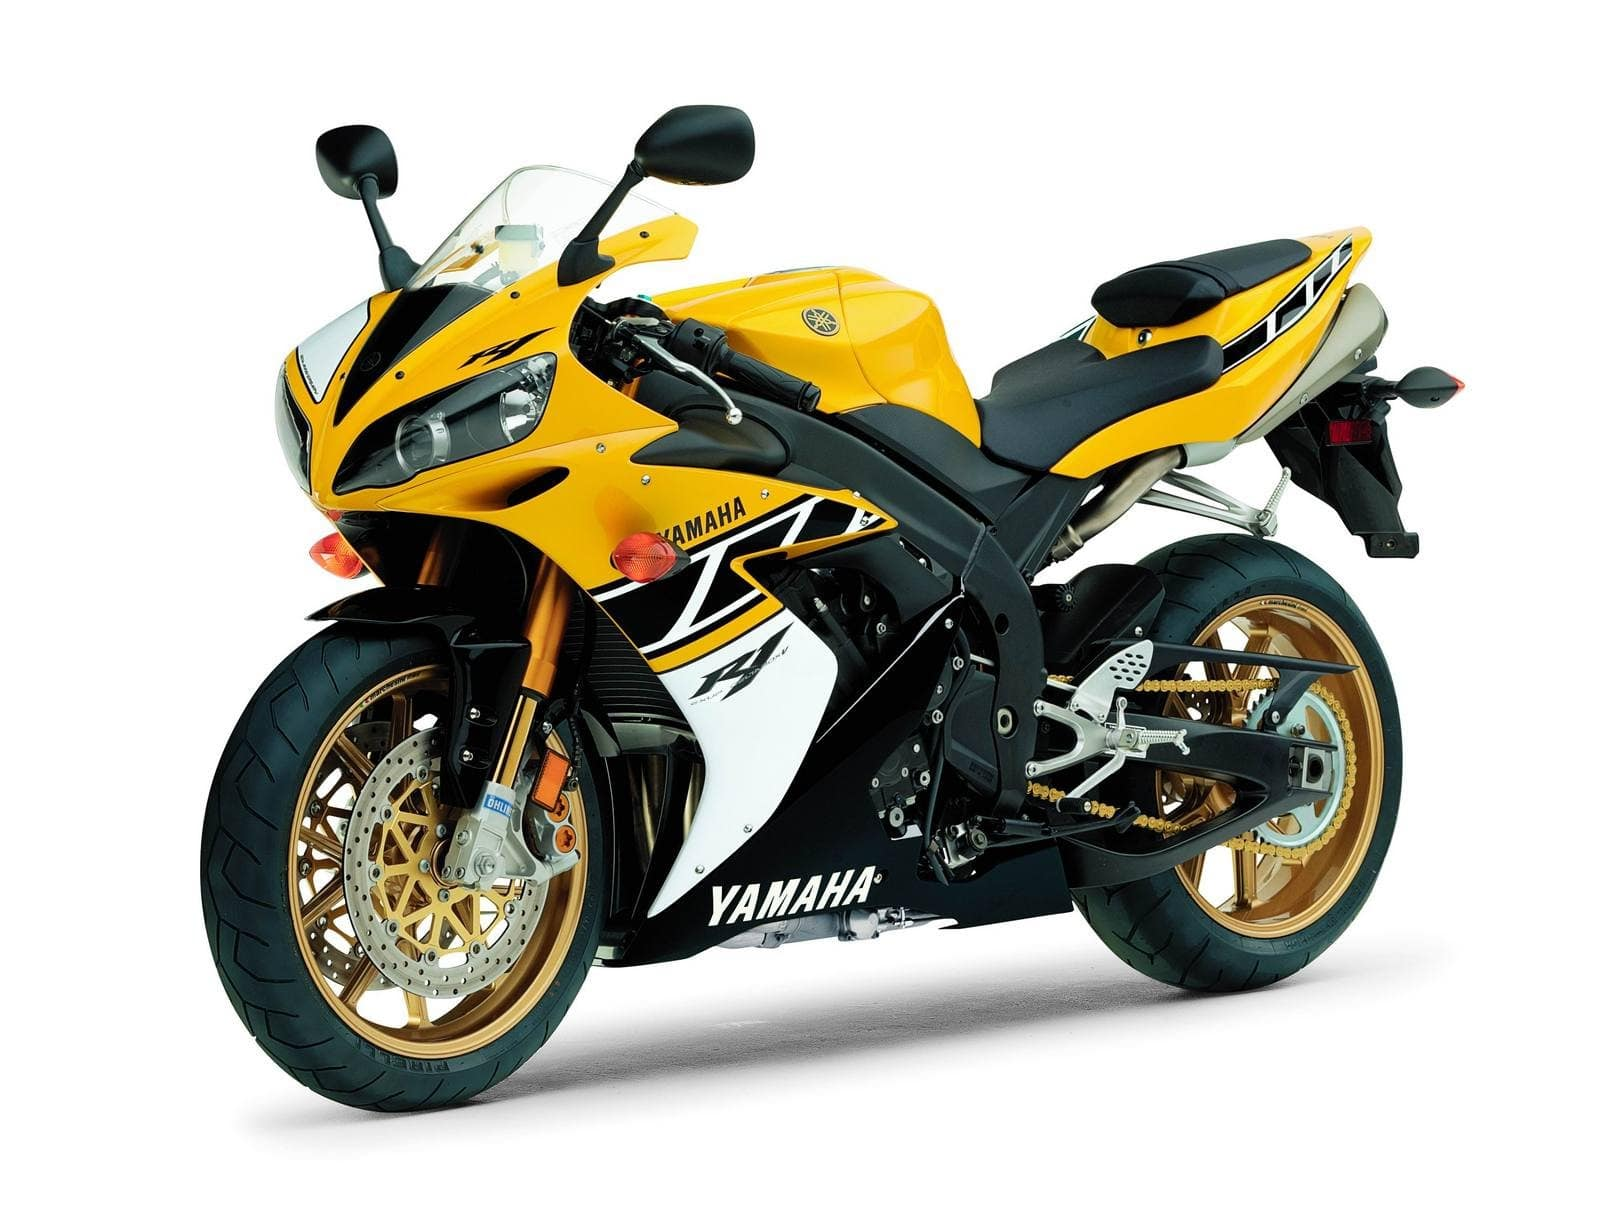 Yamaha R1 Buyer's Guide: How to Buy a Used Yamaha R1